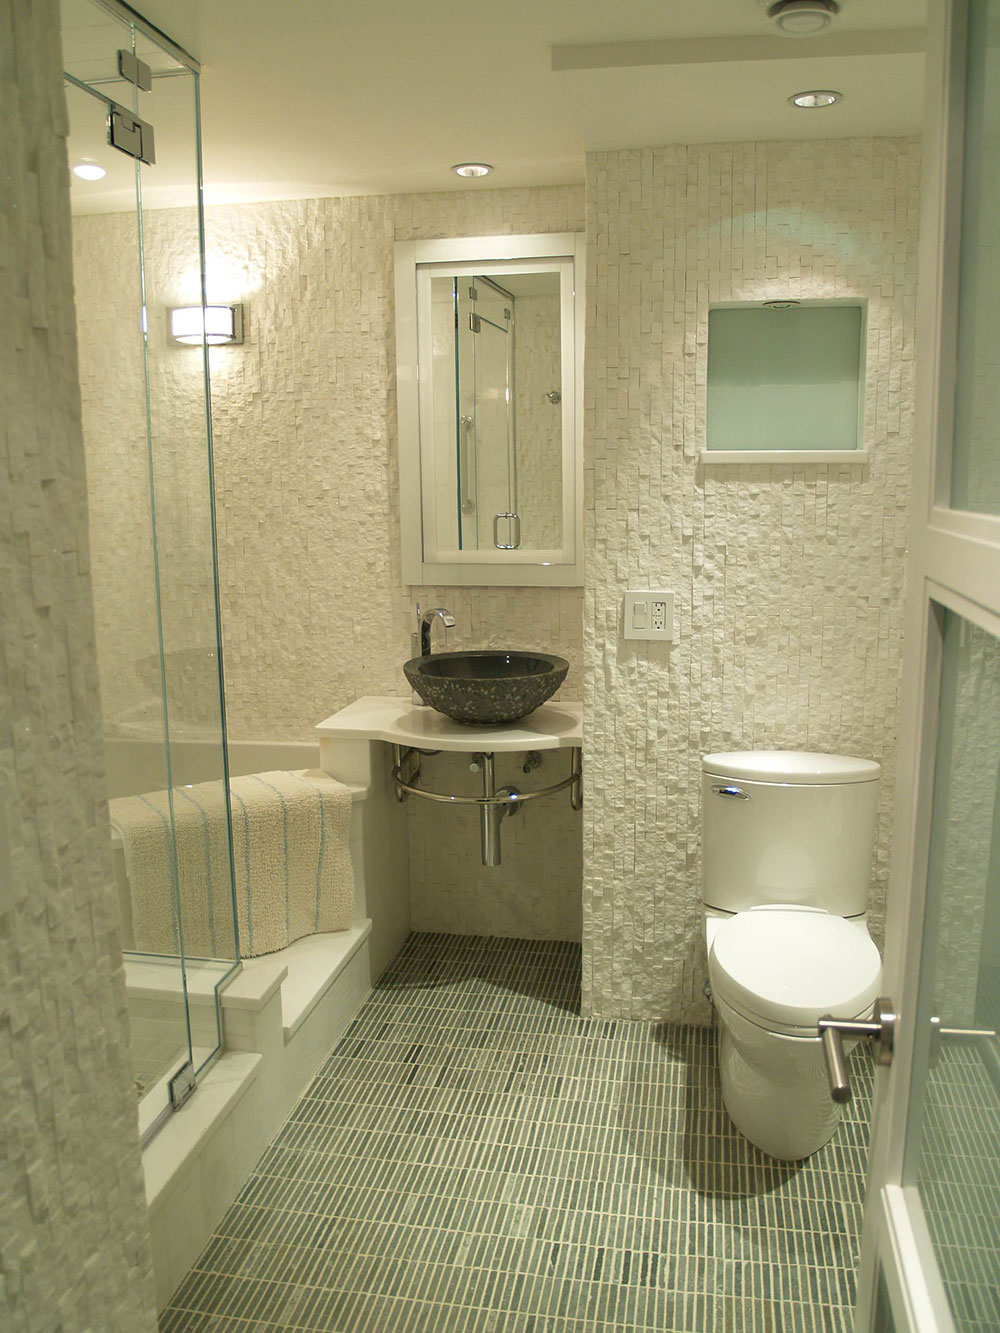 How To Make A Small Bathroom Look Bigger5